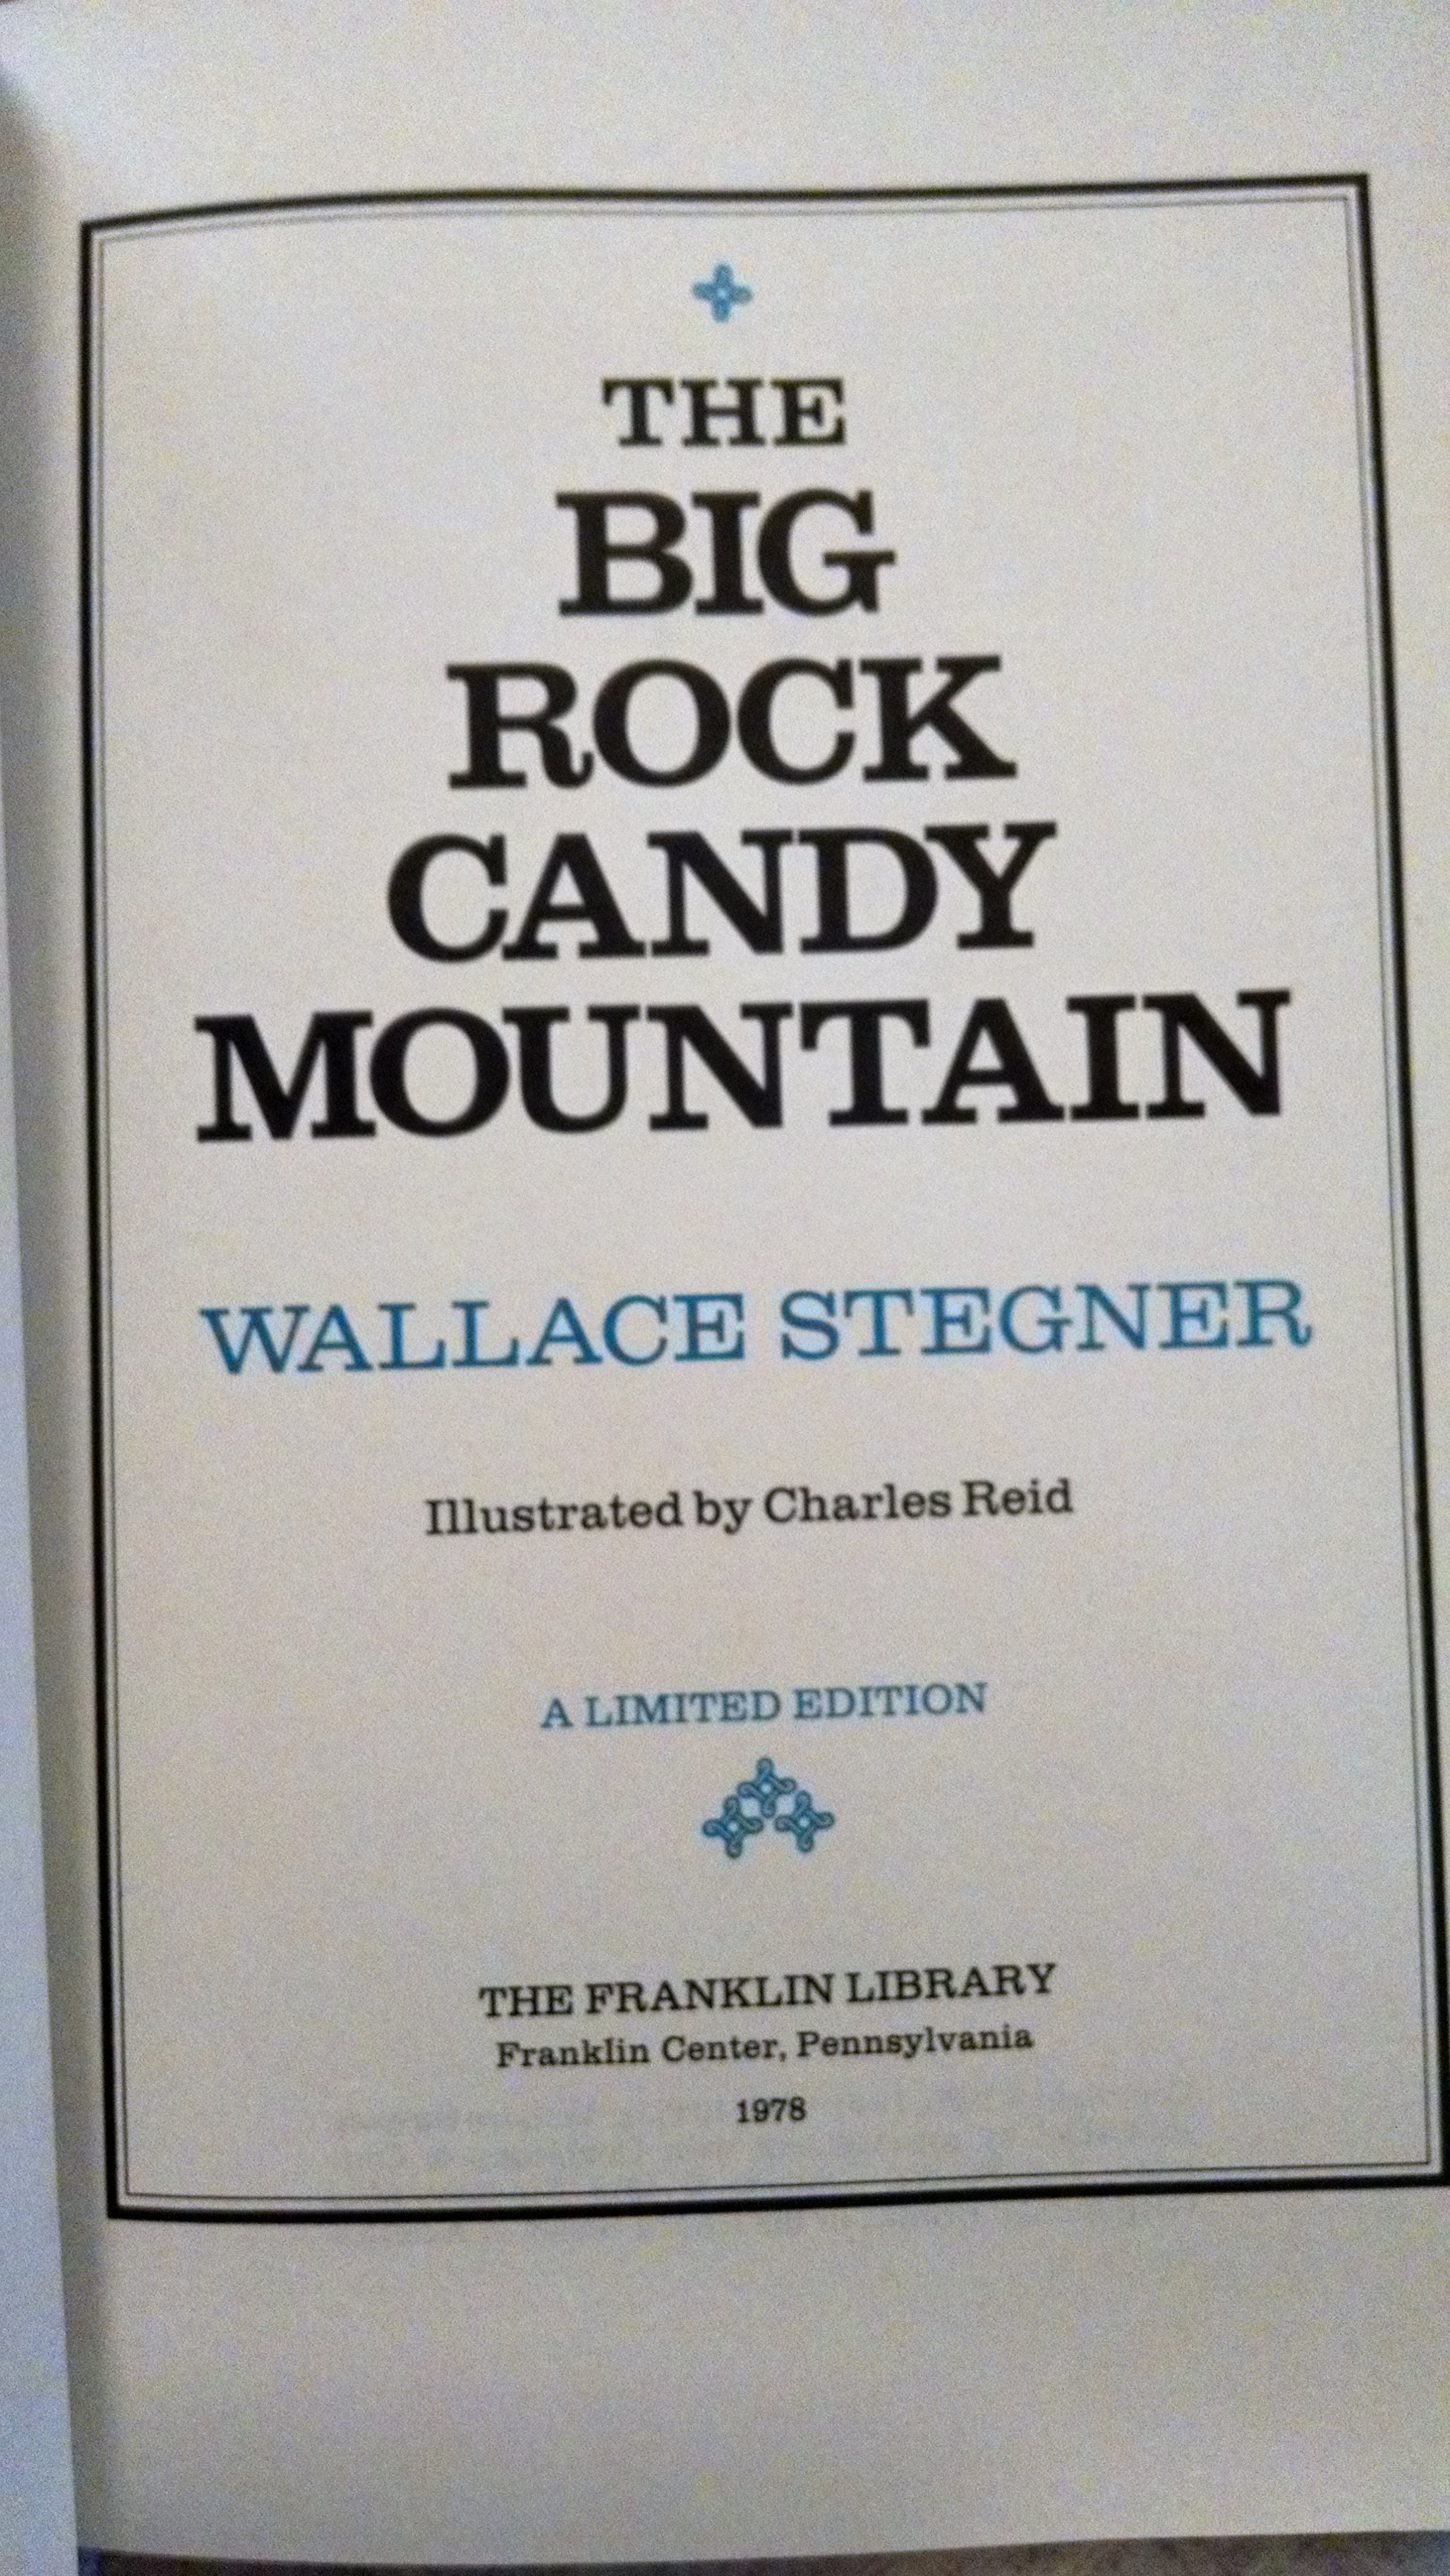 Image for THE BIG ROCK CANDY MOUNTAIN